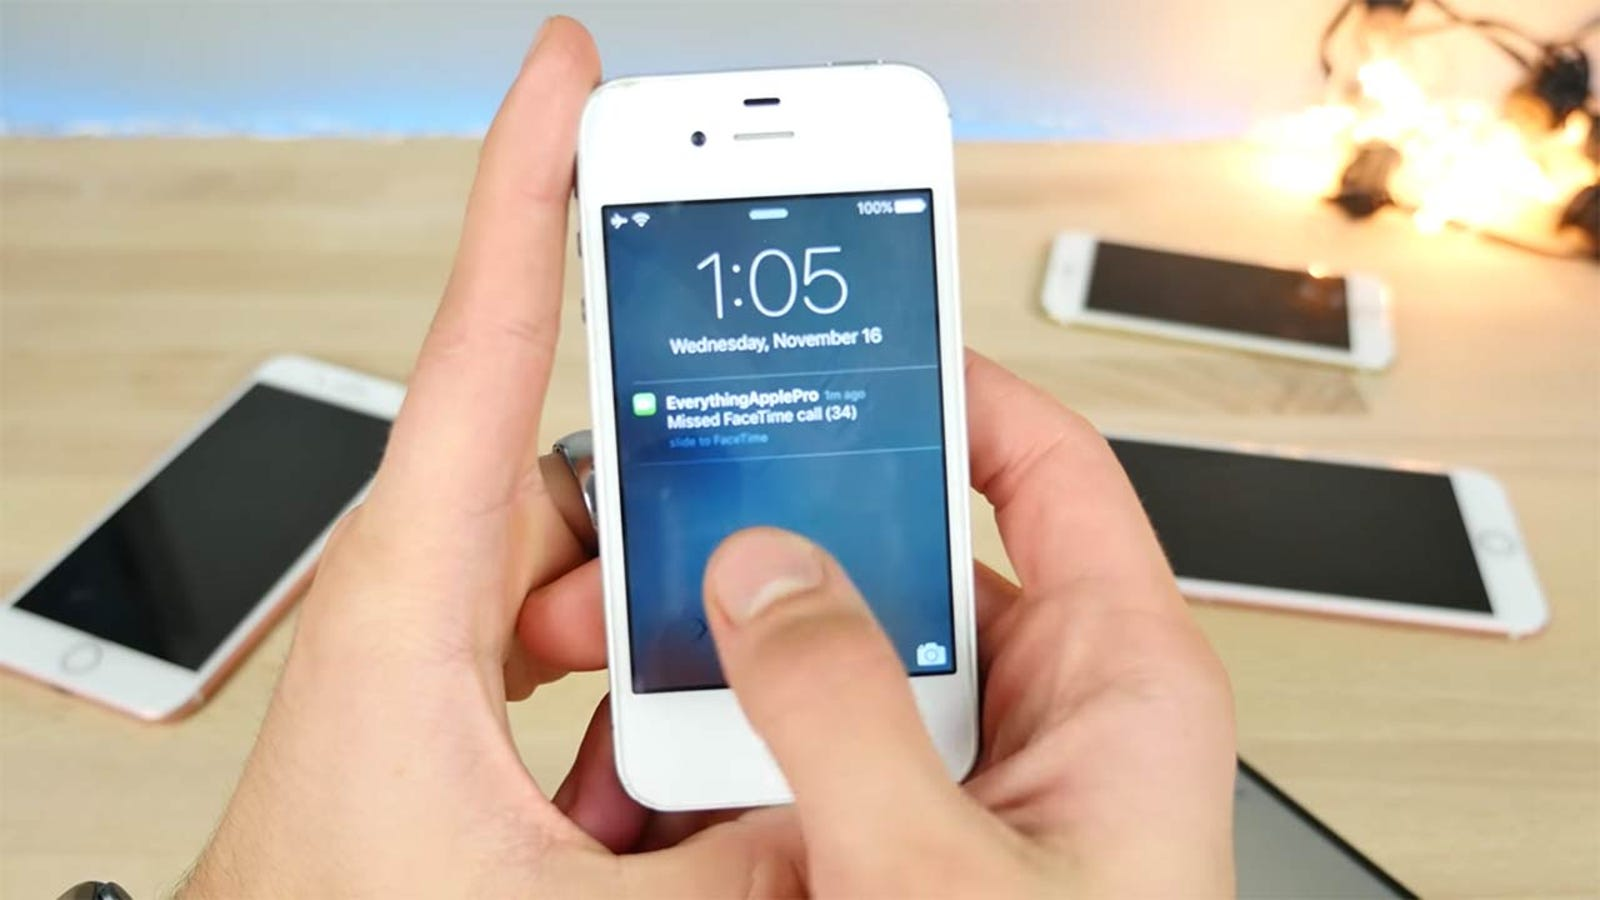 This Weird Trick Apparently Lets You Bypass Any iPhone's